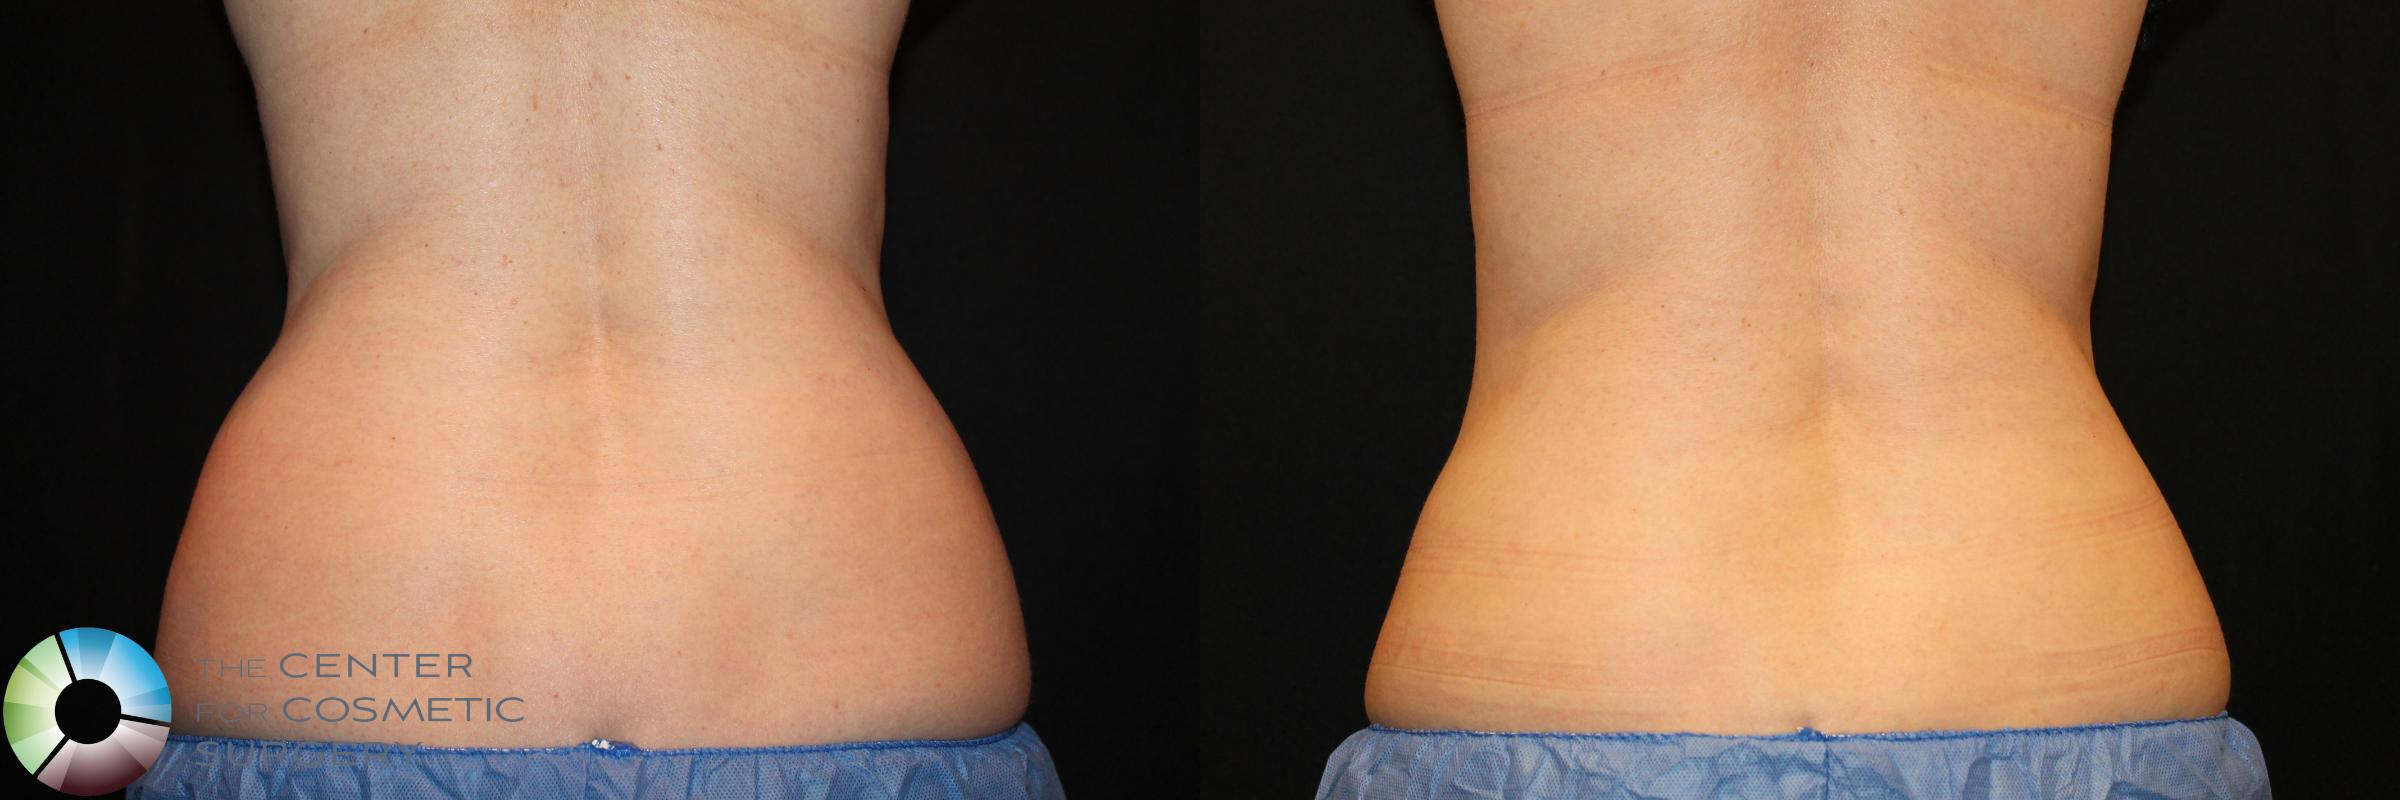 CoolSculpting Case 737 Before & After View #1 | Golden, CO | The Center for Cosmetic Surgery